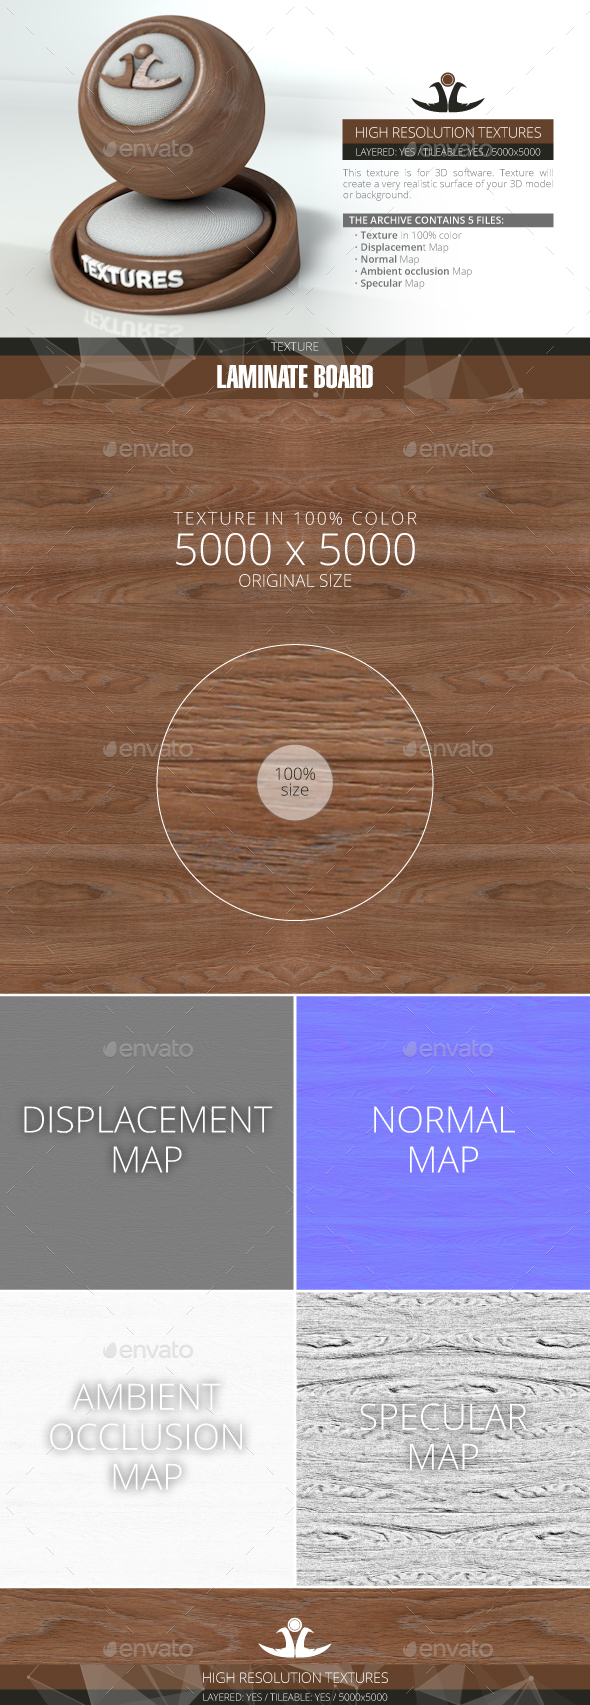 Laminate Board 5 - 3DOcean Item for Sale